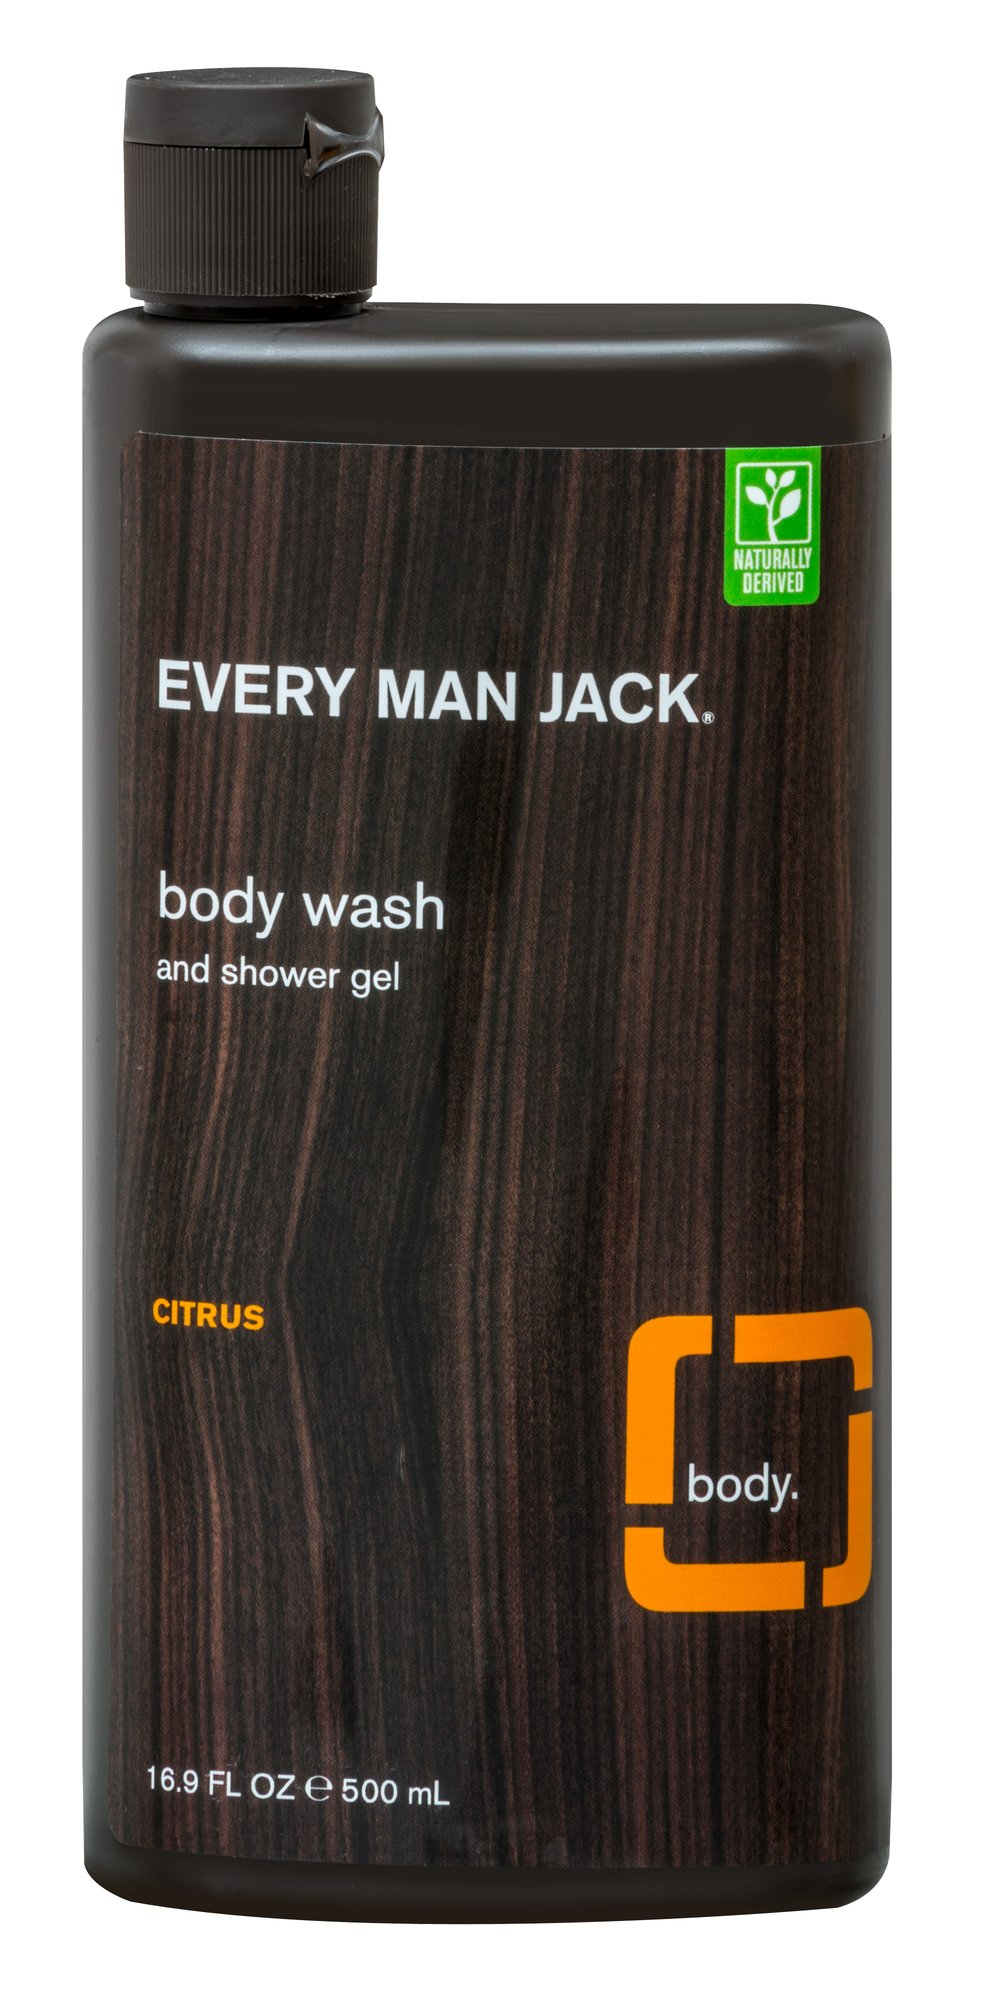 Every Man Jack® Citrus Scrub Body Wash & Shower Gel  16.9 fl oz Liquid  $5.29